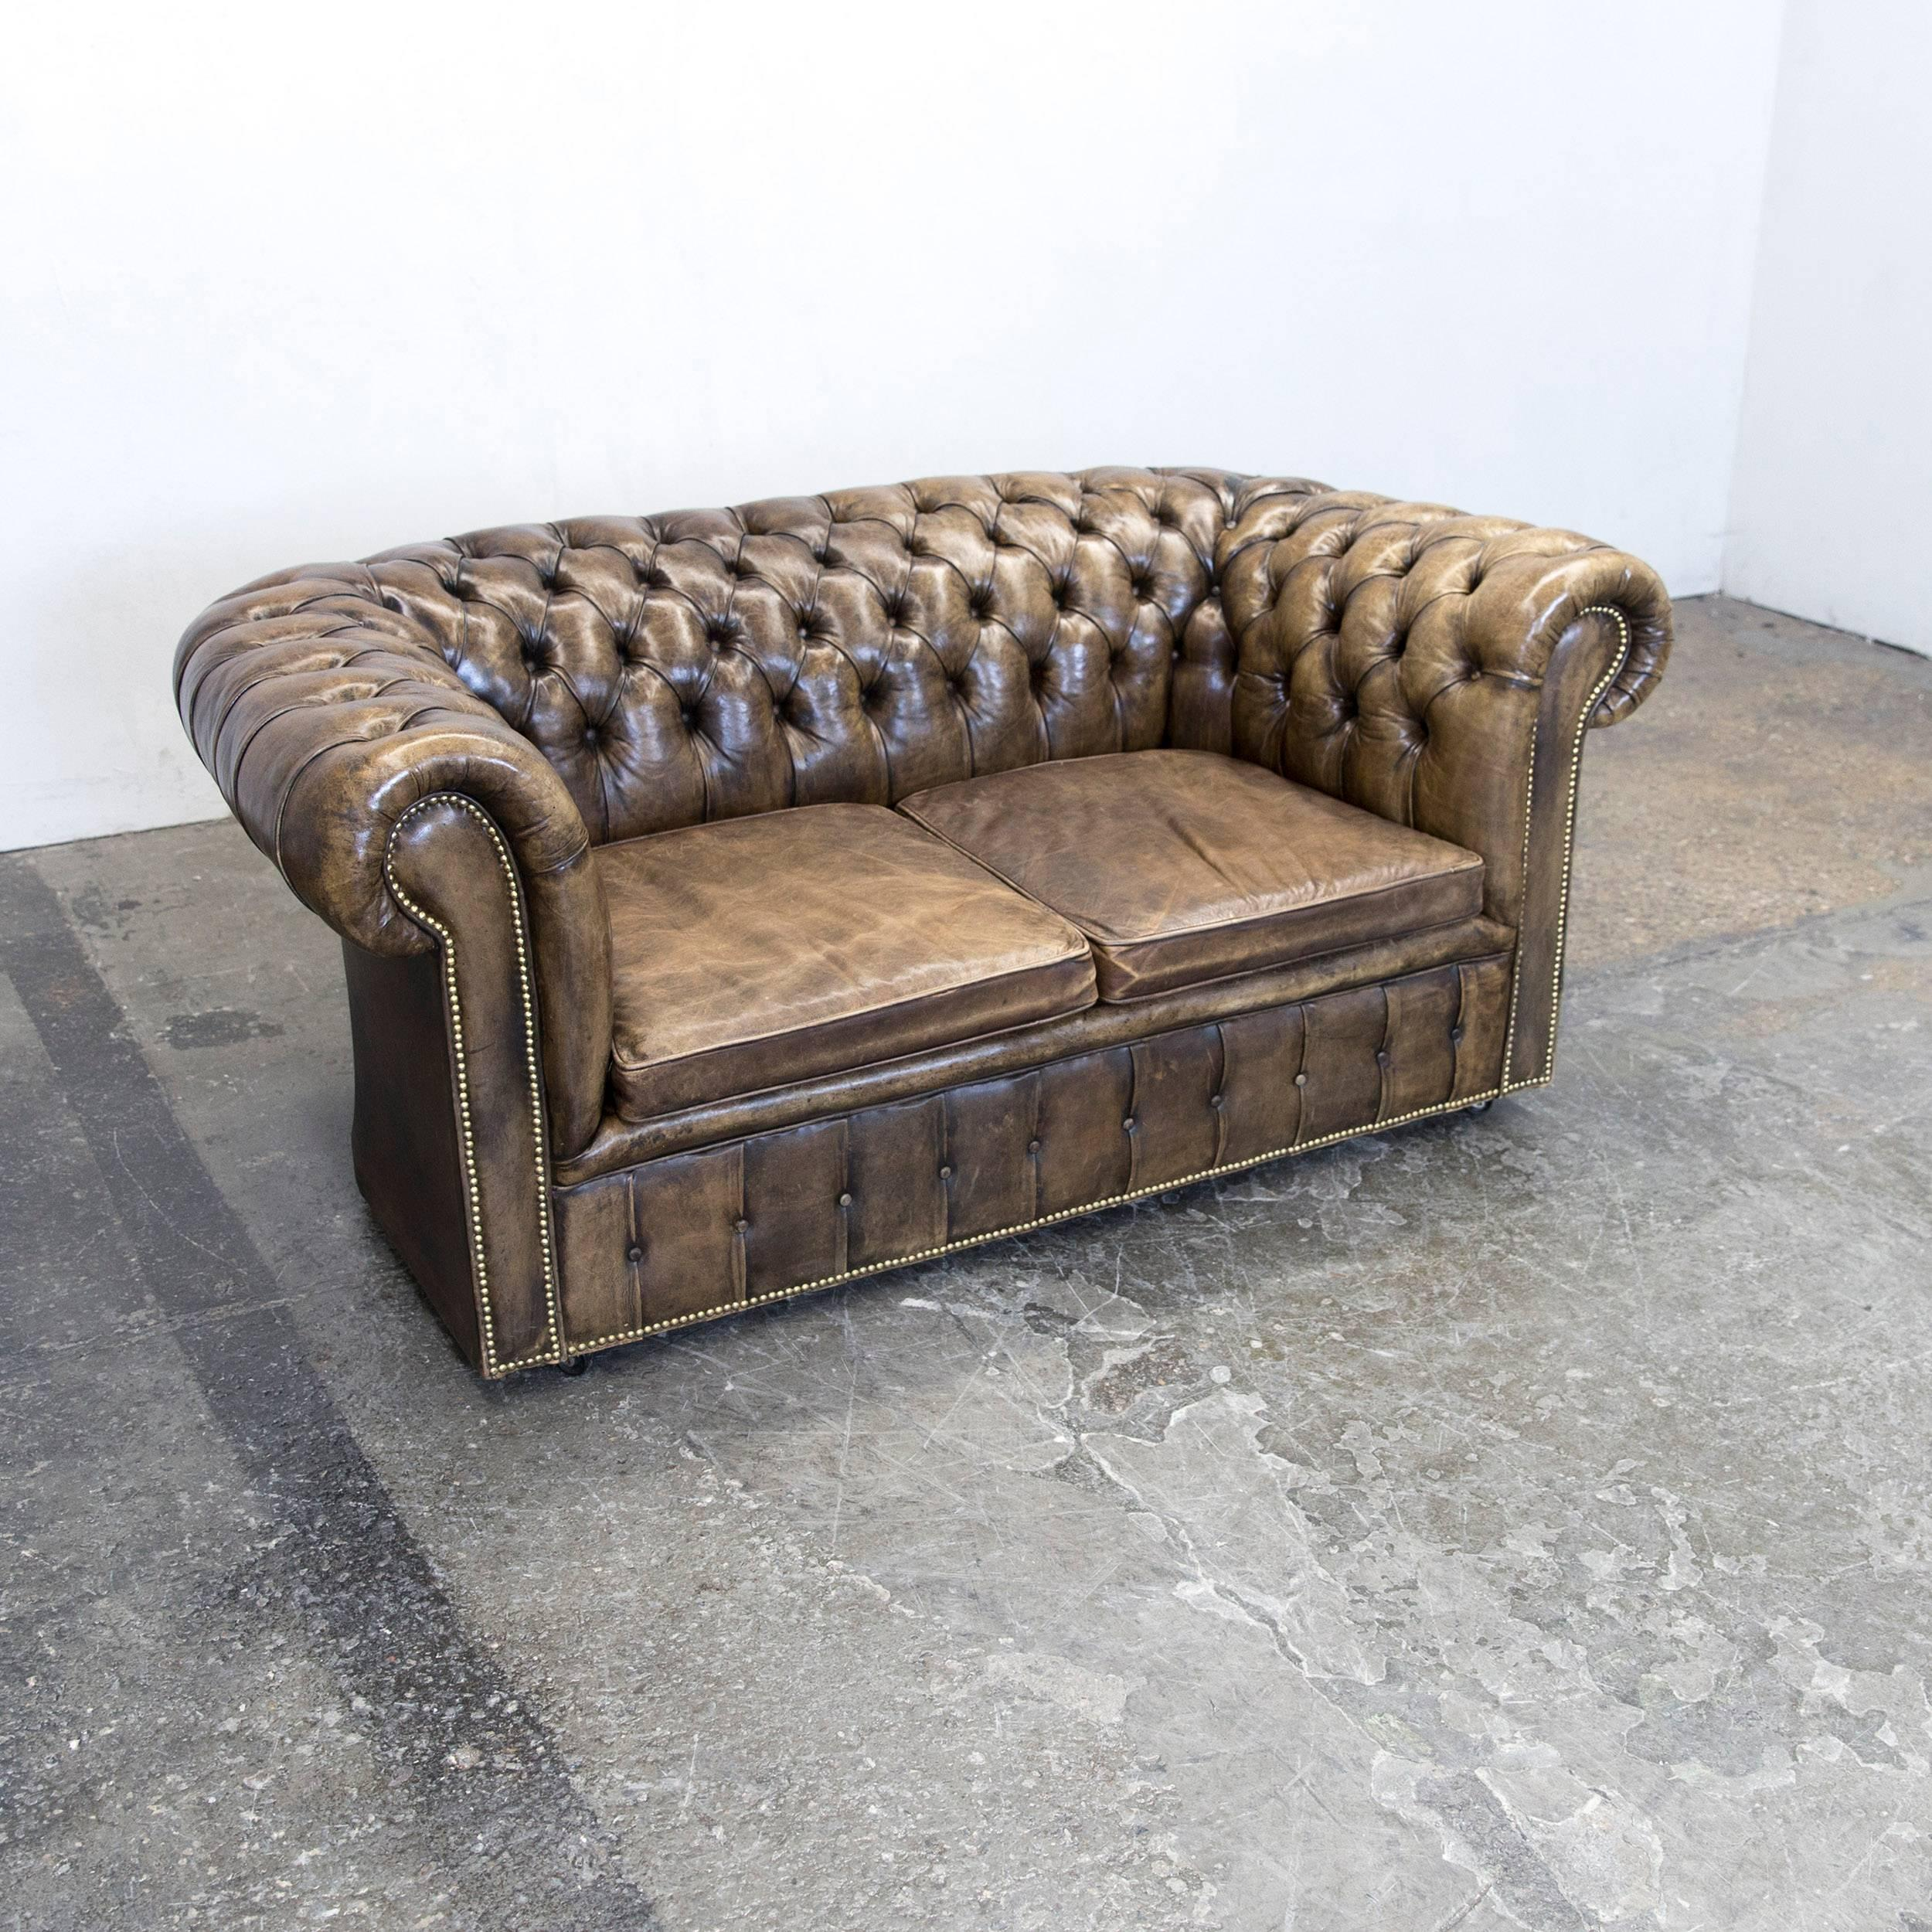 Fantastisch Brown Colored Chesterfield Leather Sofa, In A Vintage Design, Made For Pure  Comfort And